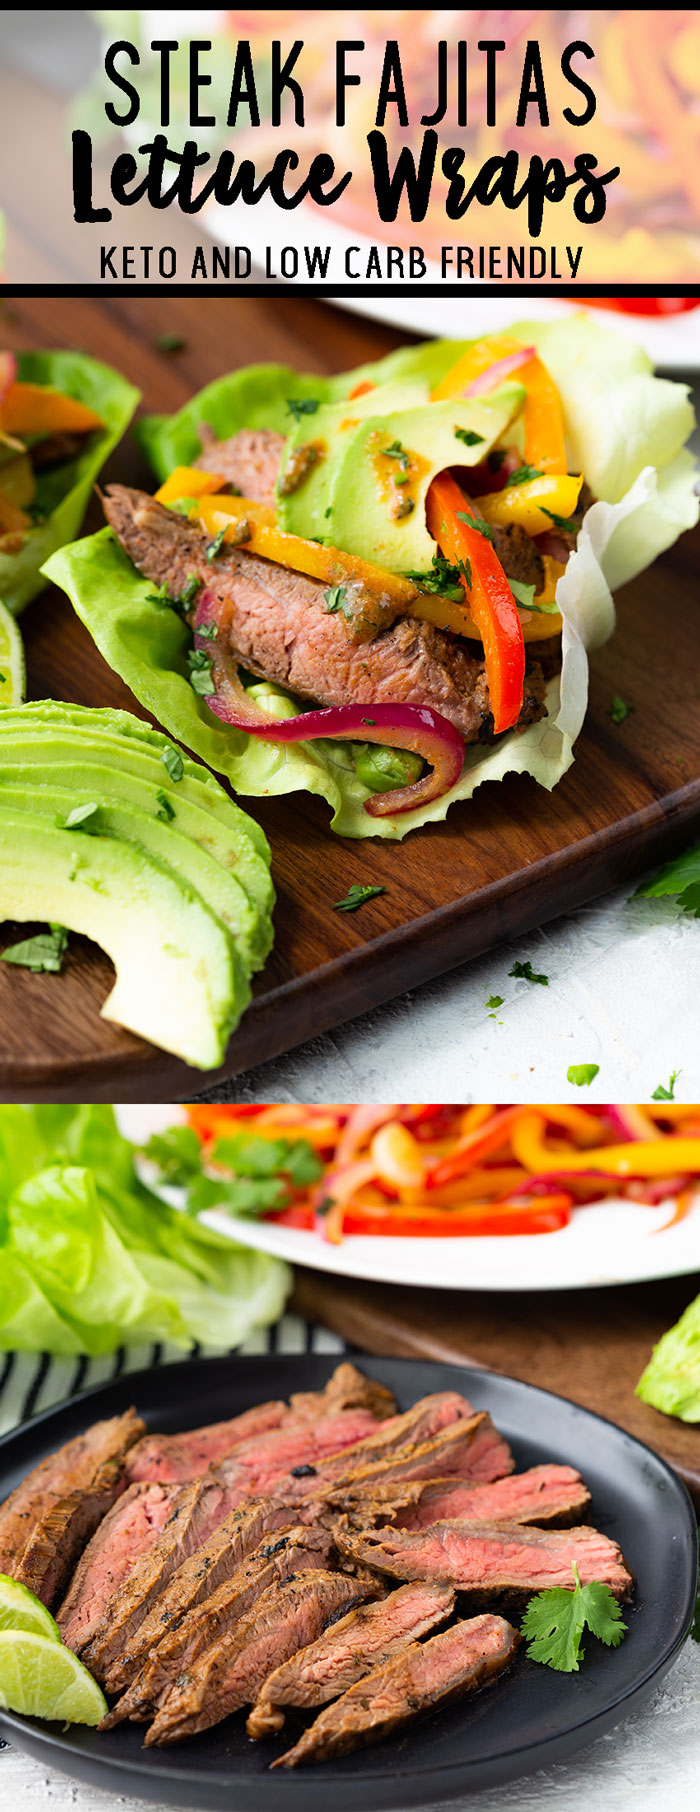 Steak Fajitas lettuce wraps